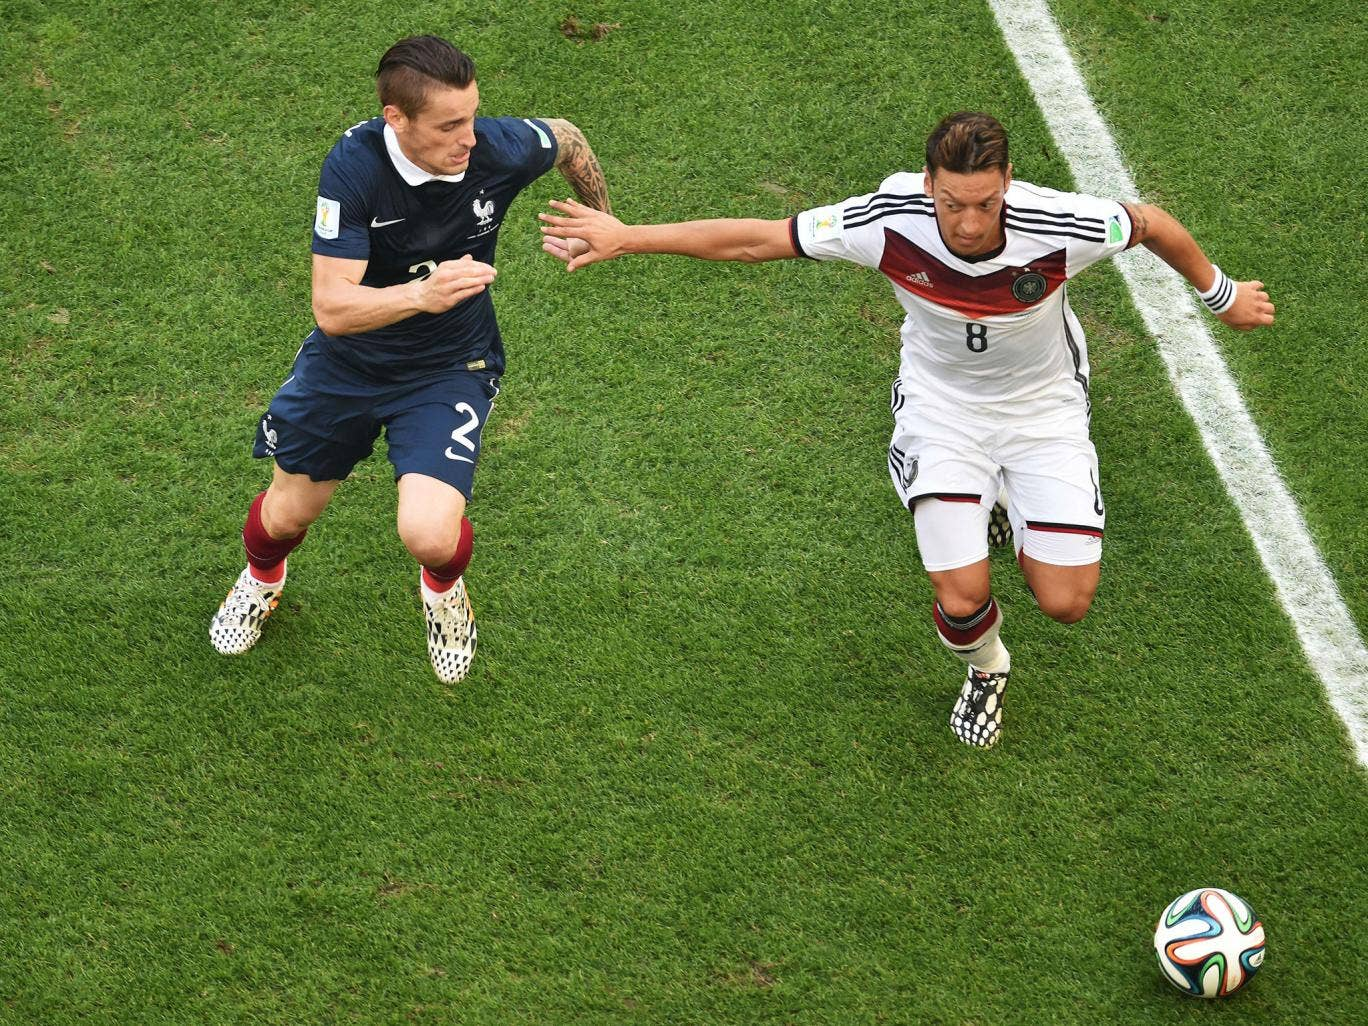 France's defender Mathieu Debuchy (L) tackles Germany's midfielder Mesut Ozil